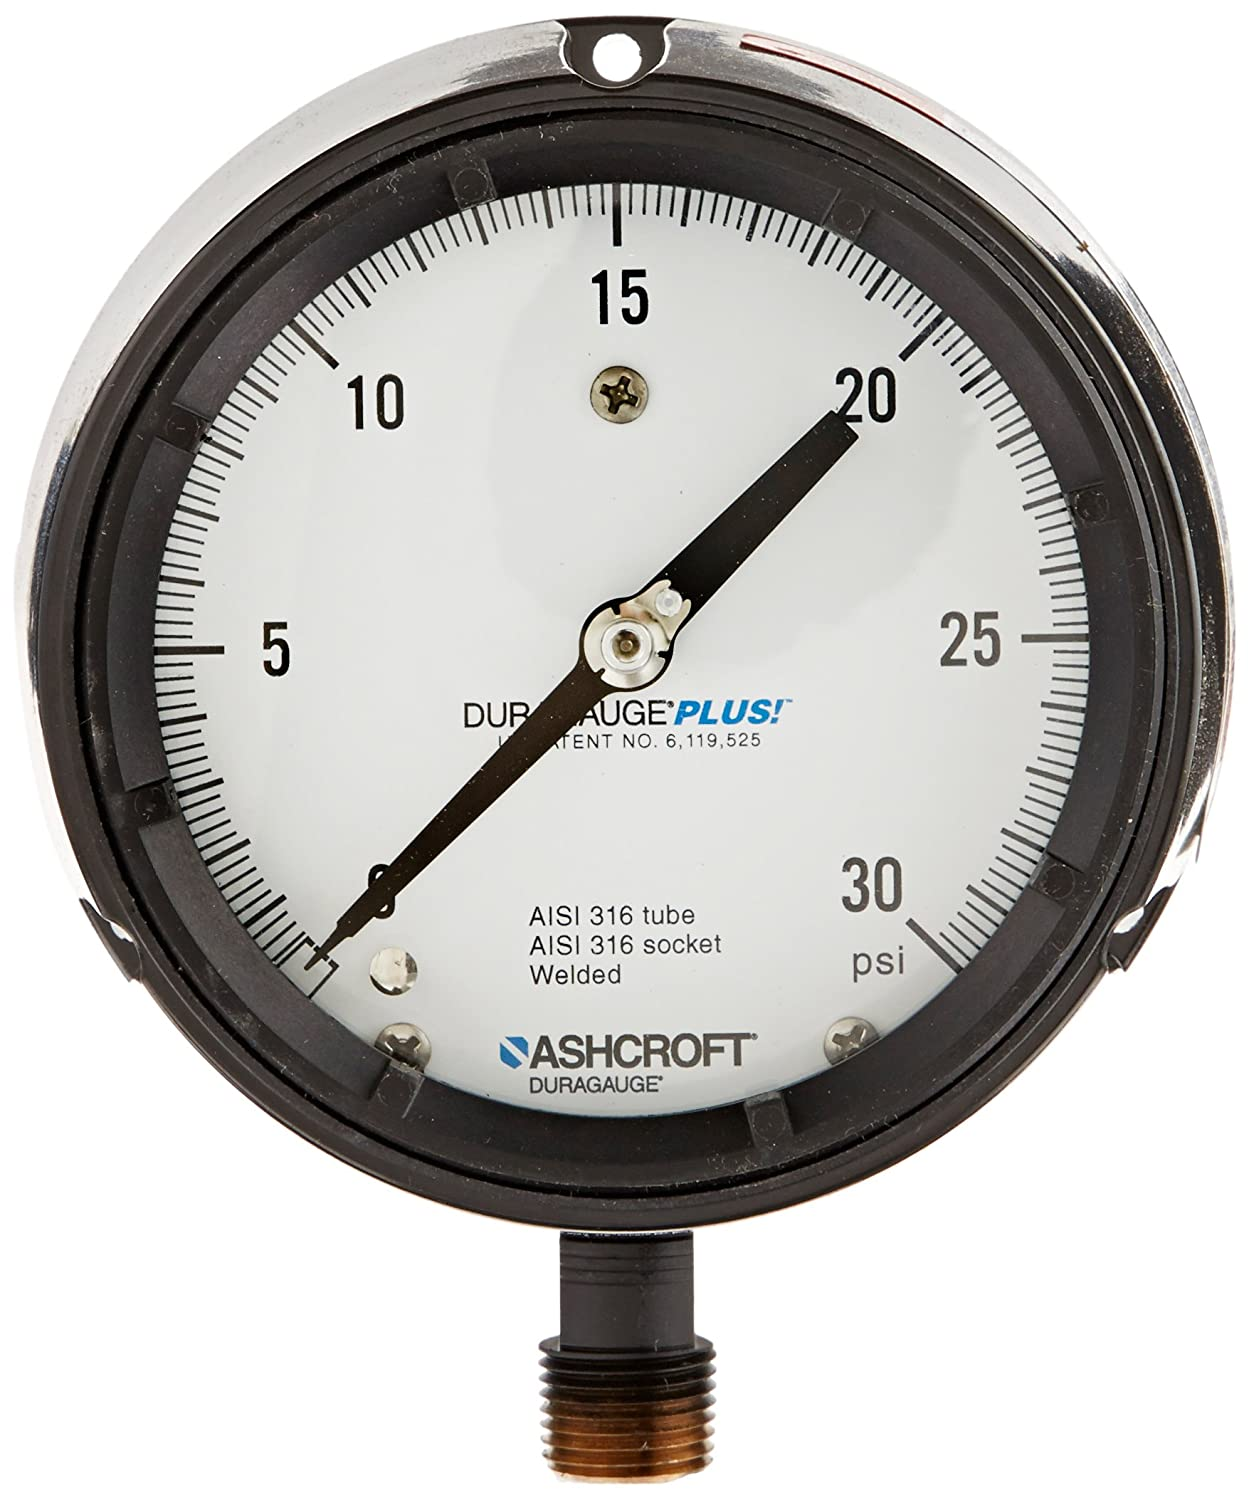 Ashcroft Type 1008 304 Stainless Steel Case Pressure Gauge 100//100 KPA Pressure Range 1//4 NPT Lower Connection Ashcroft Inc 1//4 NPT Lower Connection 631008S02L1100KP 316 Stainless Steel Socket 63mm Dial Size 316 Stainless Steel Bourdon Tube